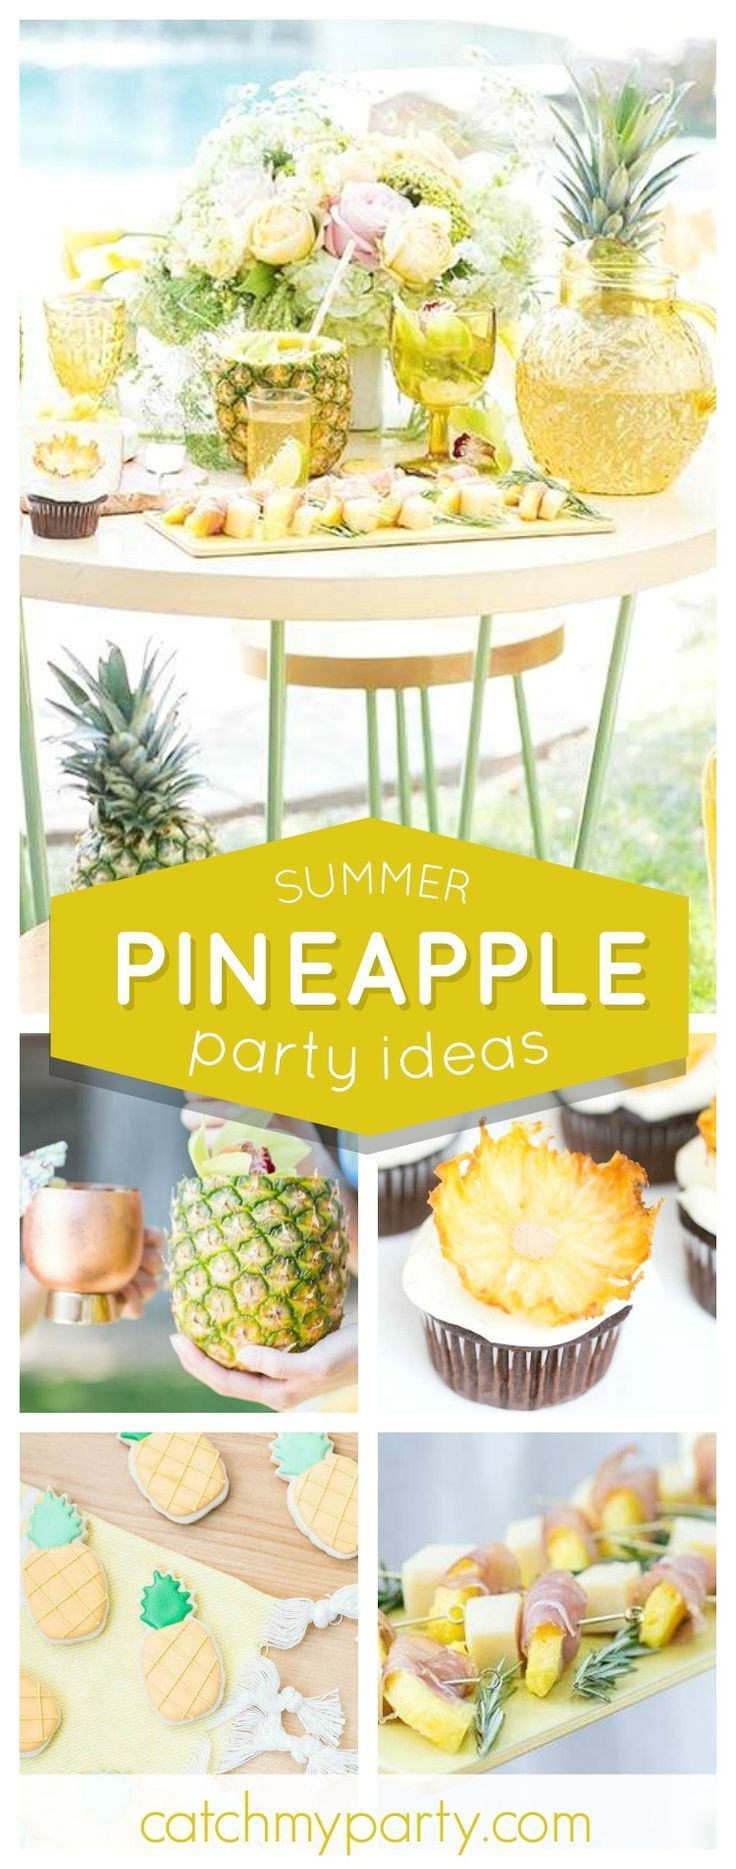 Don't miss this gorgeous Summer Pineapple Garden Party! The cupcakes looks delicious!!